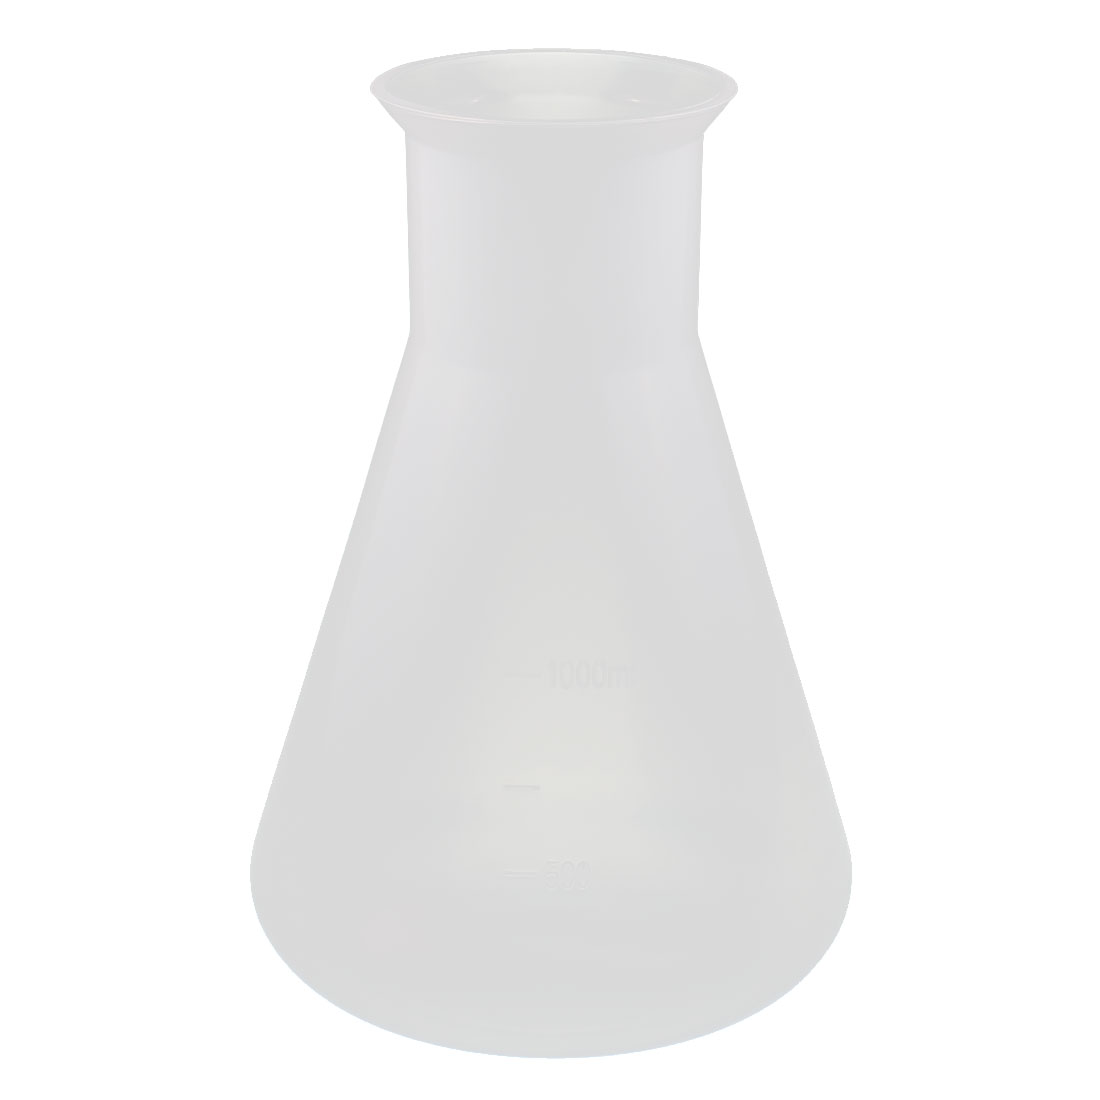 Chemistry Laboratory Equipment 1000ml Plastic Cone Measuring Cup Thicken Clear